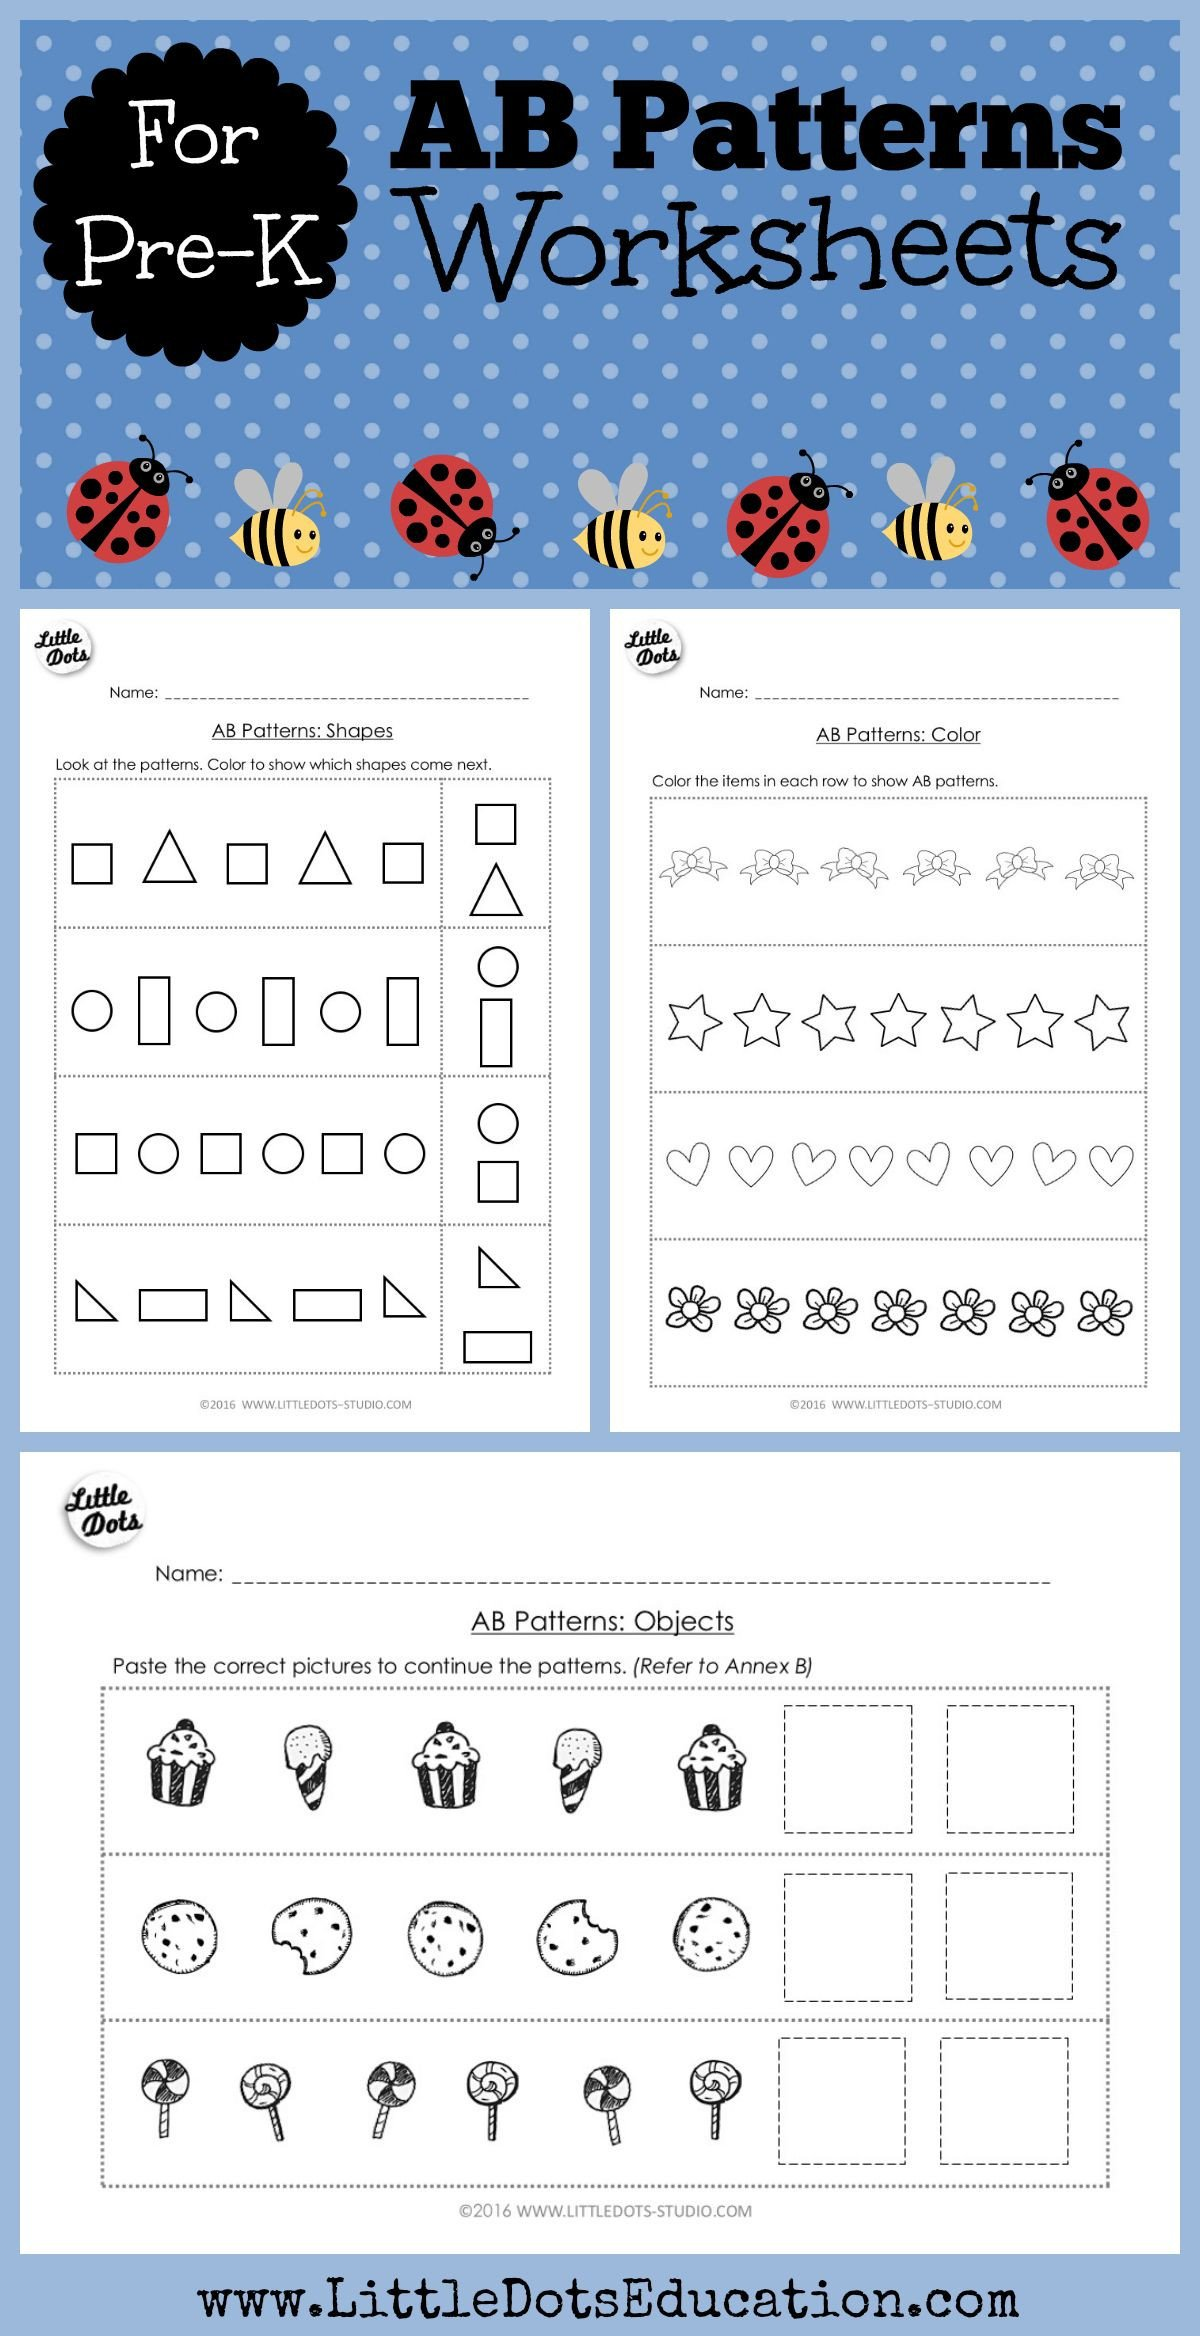 Geometric Shapes Patterns Worksheets Pre K Math Ab Patterns Worksheets and Activities